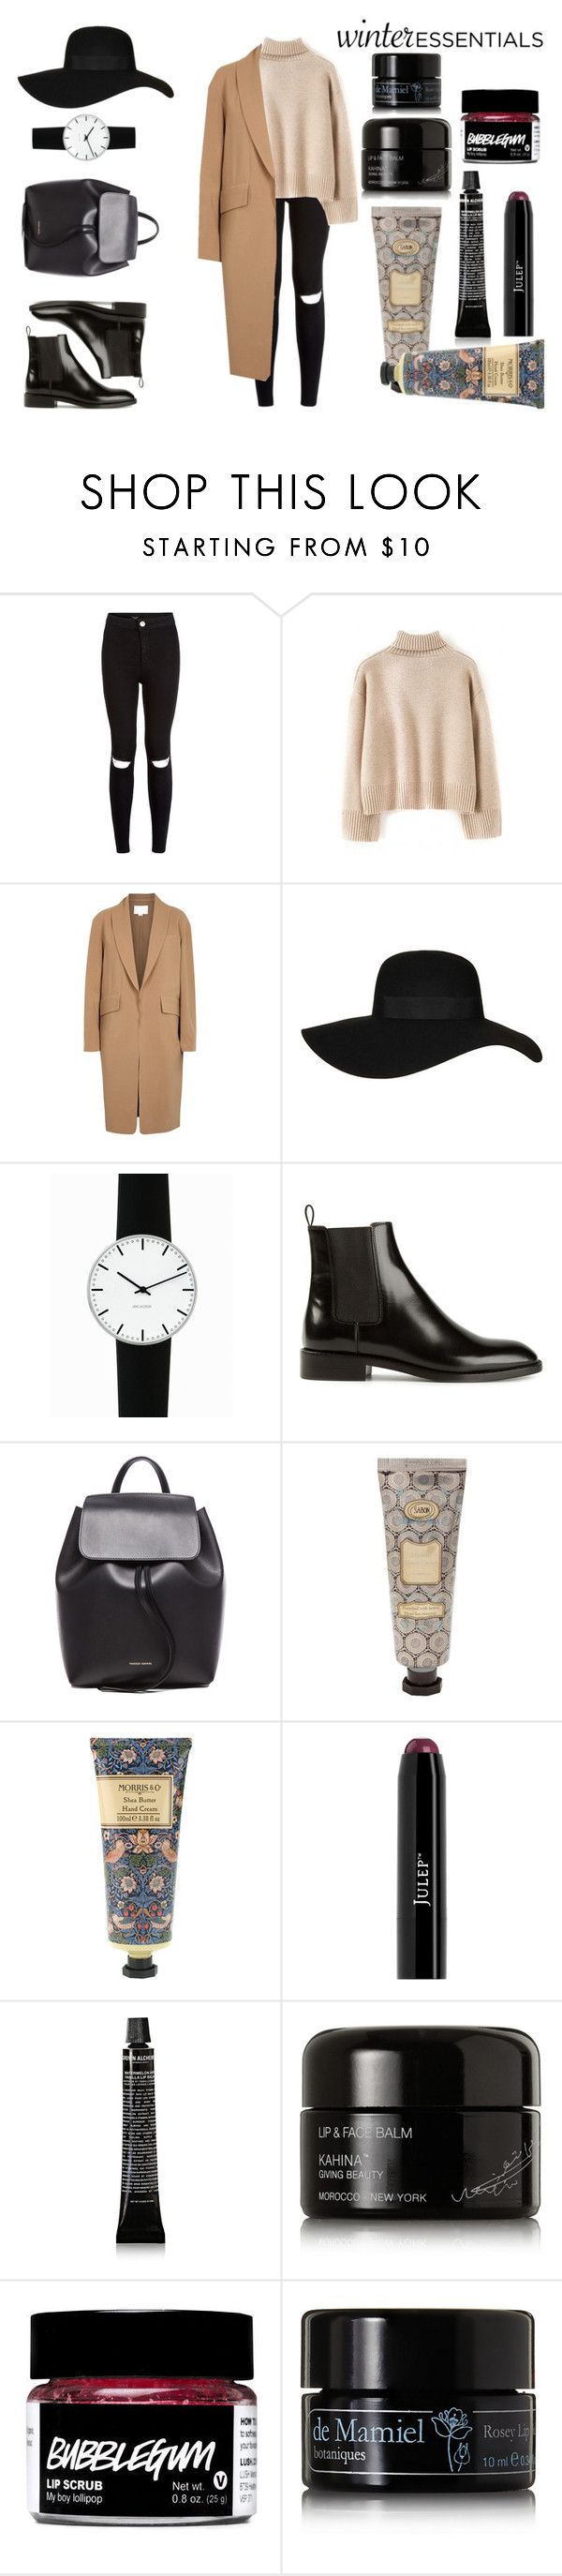 """Winter Essentials!!"" by eirini-kastrou on Polyvore featuring Alexander Wang, Topshop, Rosendahl, Yves Saint Laurent, Mansur Gavriel, William Morris, Grown Alchemist, Kahina Giving Beauty and de Mamiel"